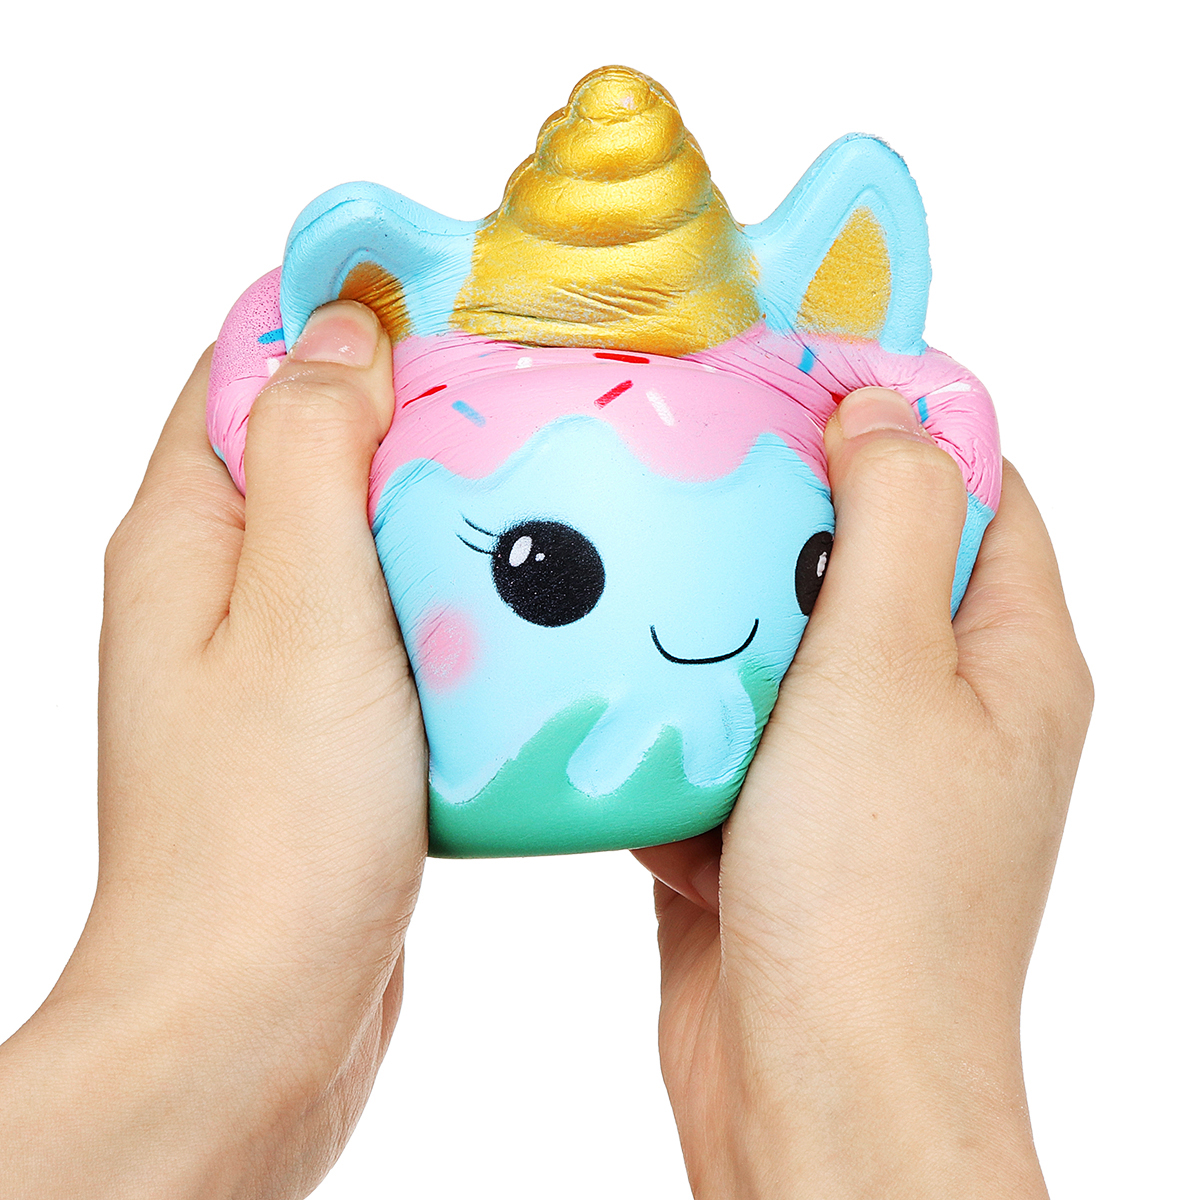 Jumbo Squishy Squeeze Unicorn Mermaid Cake Slow Rising Cream Gift Kids Toy